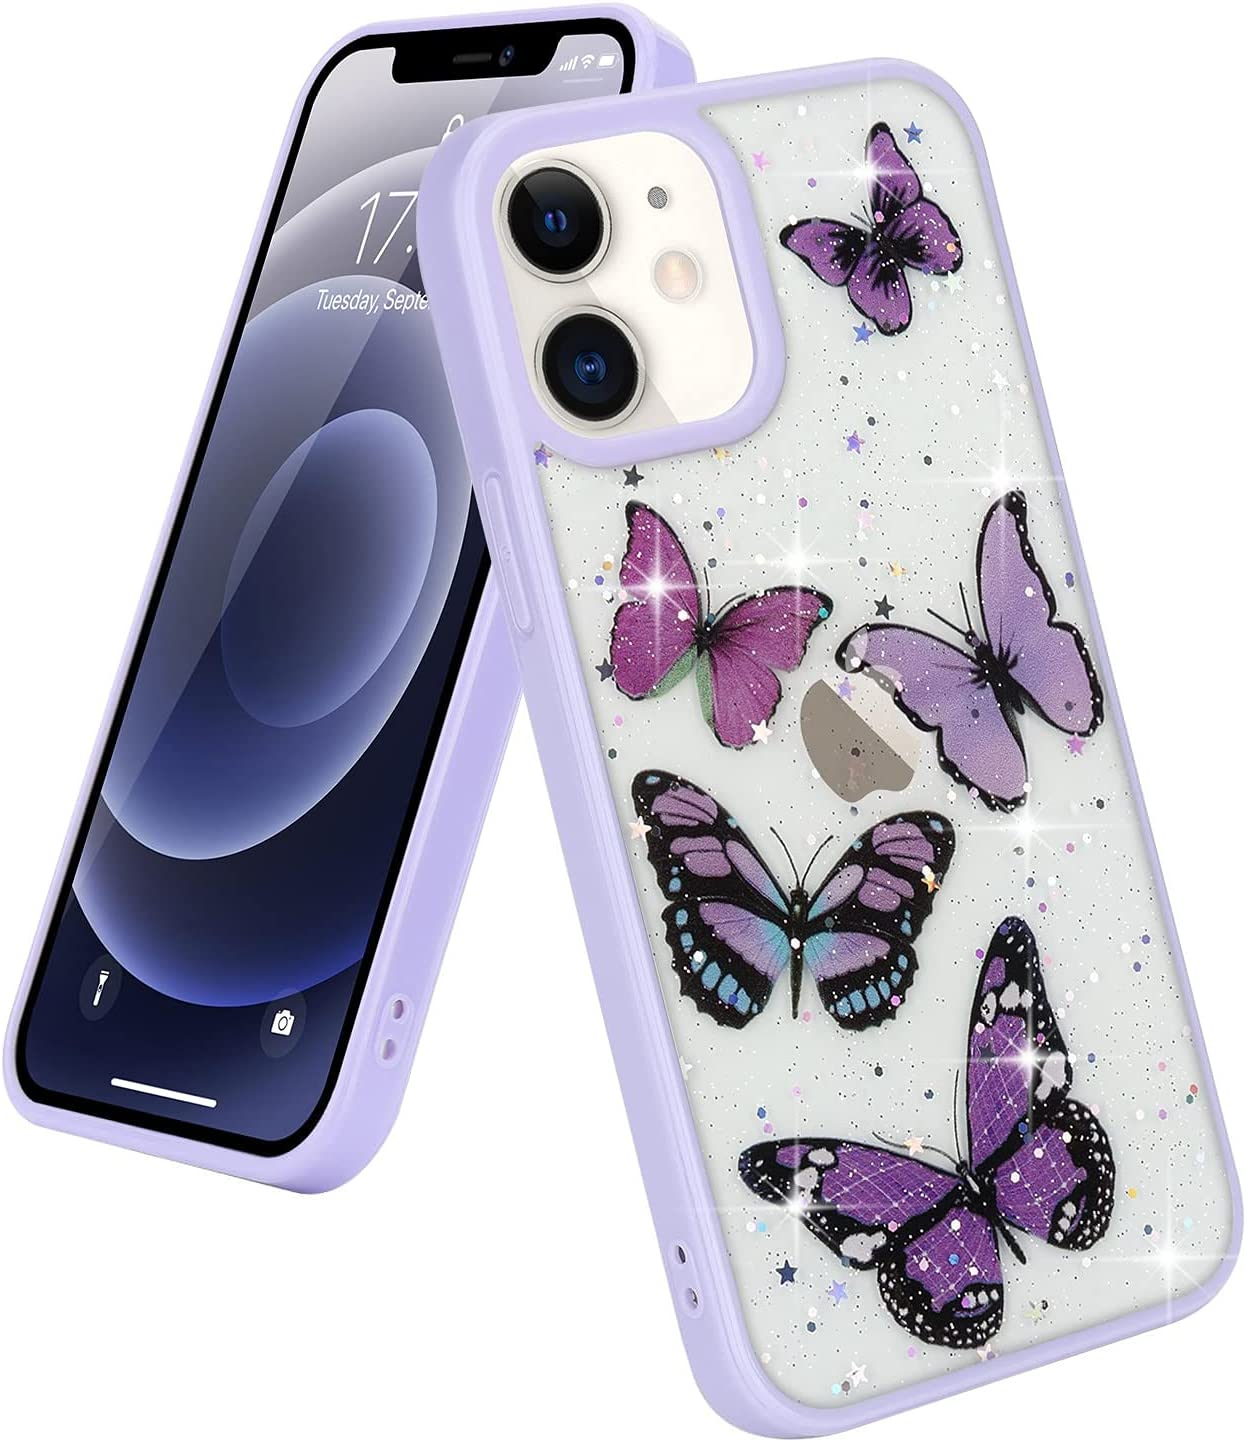 Urarssa Compatible with iPhone 7 Plus Case iPhone 8 Plus Case Cute Purple Butterfly Bling Glitter Clear Case for Women Girls Sparkle Stars Soft TPU Shockproof Protective Case for iPhone 7 Plus/8 Plus